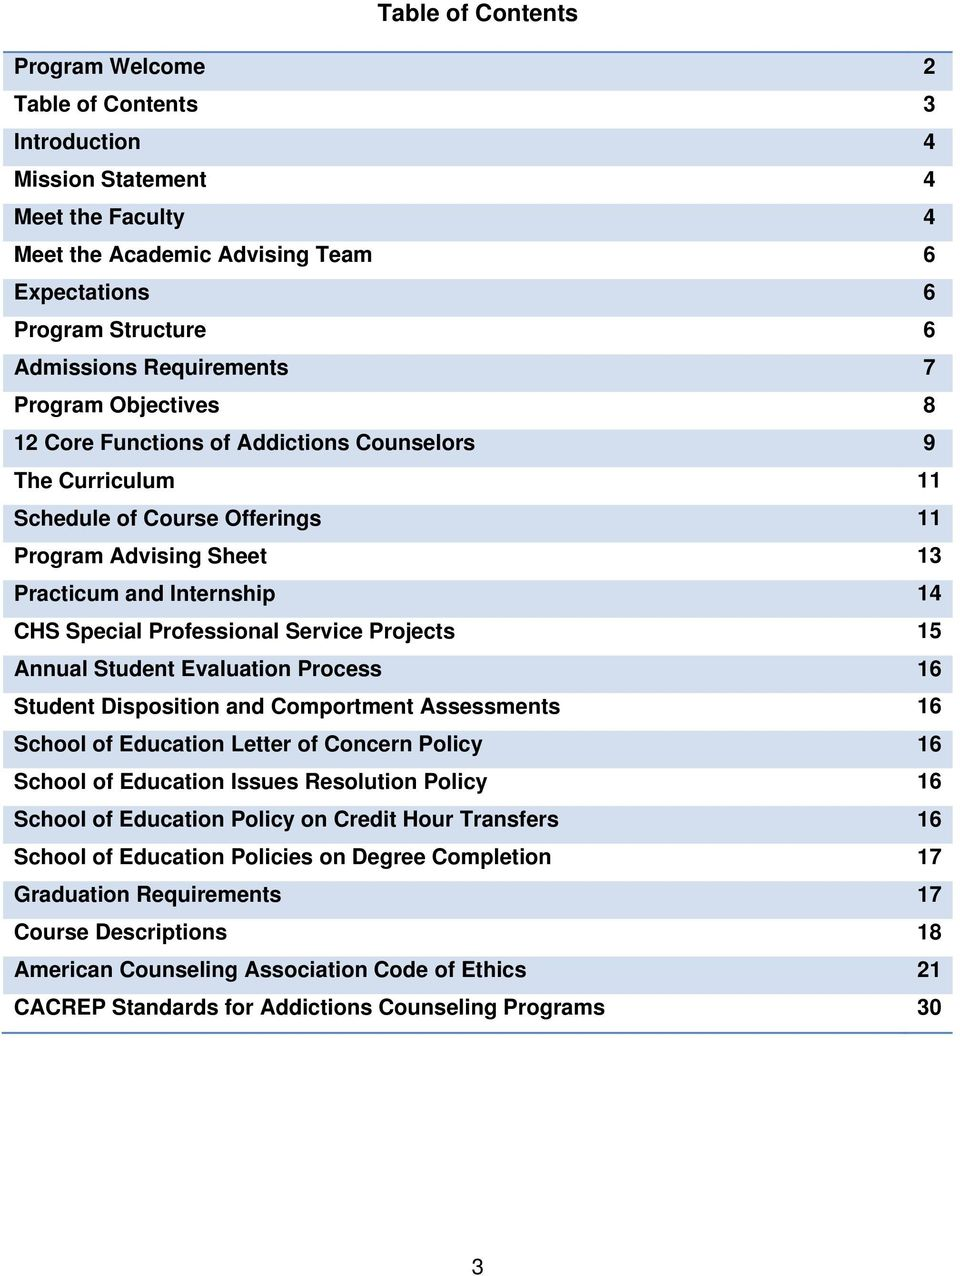 Professional Service Projects 15 Annual Student Evaluation Process 16 Student Disposition and Comportment Assessments 16 School of Education Letter of Concern Policy 16 School of Education Issues